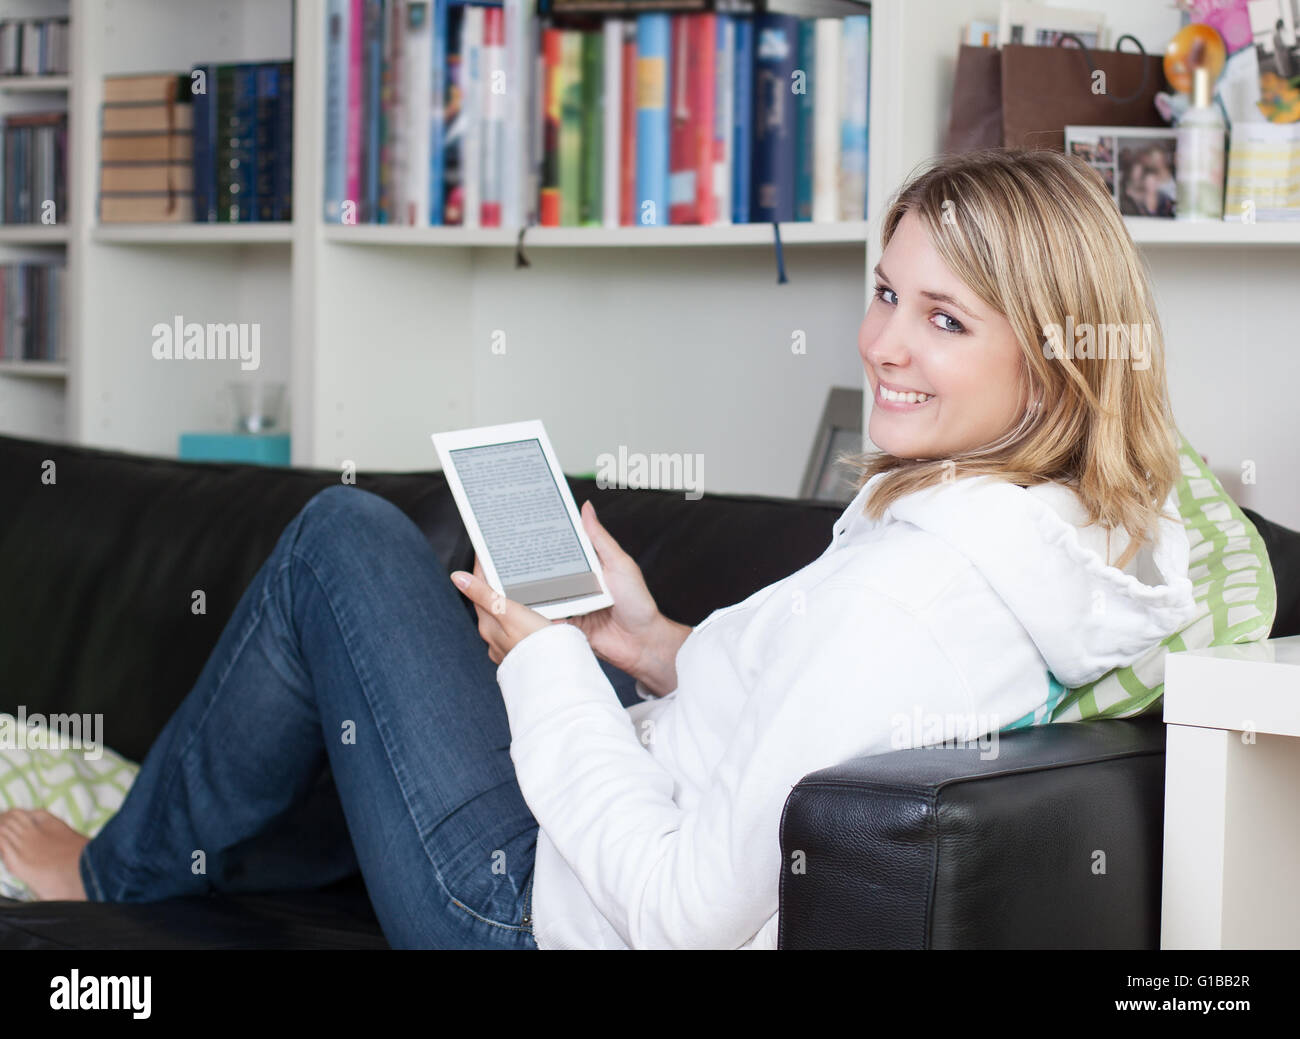 Woman reads an ebook in her free time on the couch at home - Stock Image